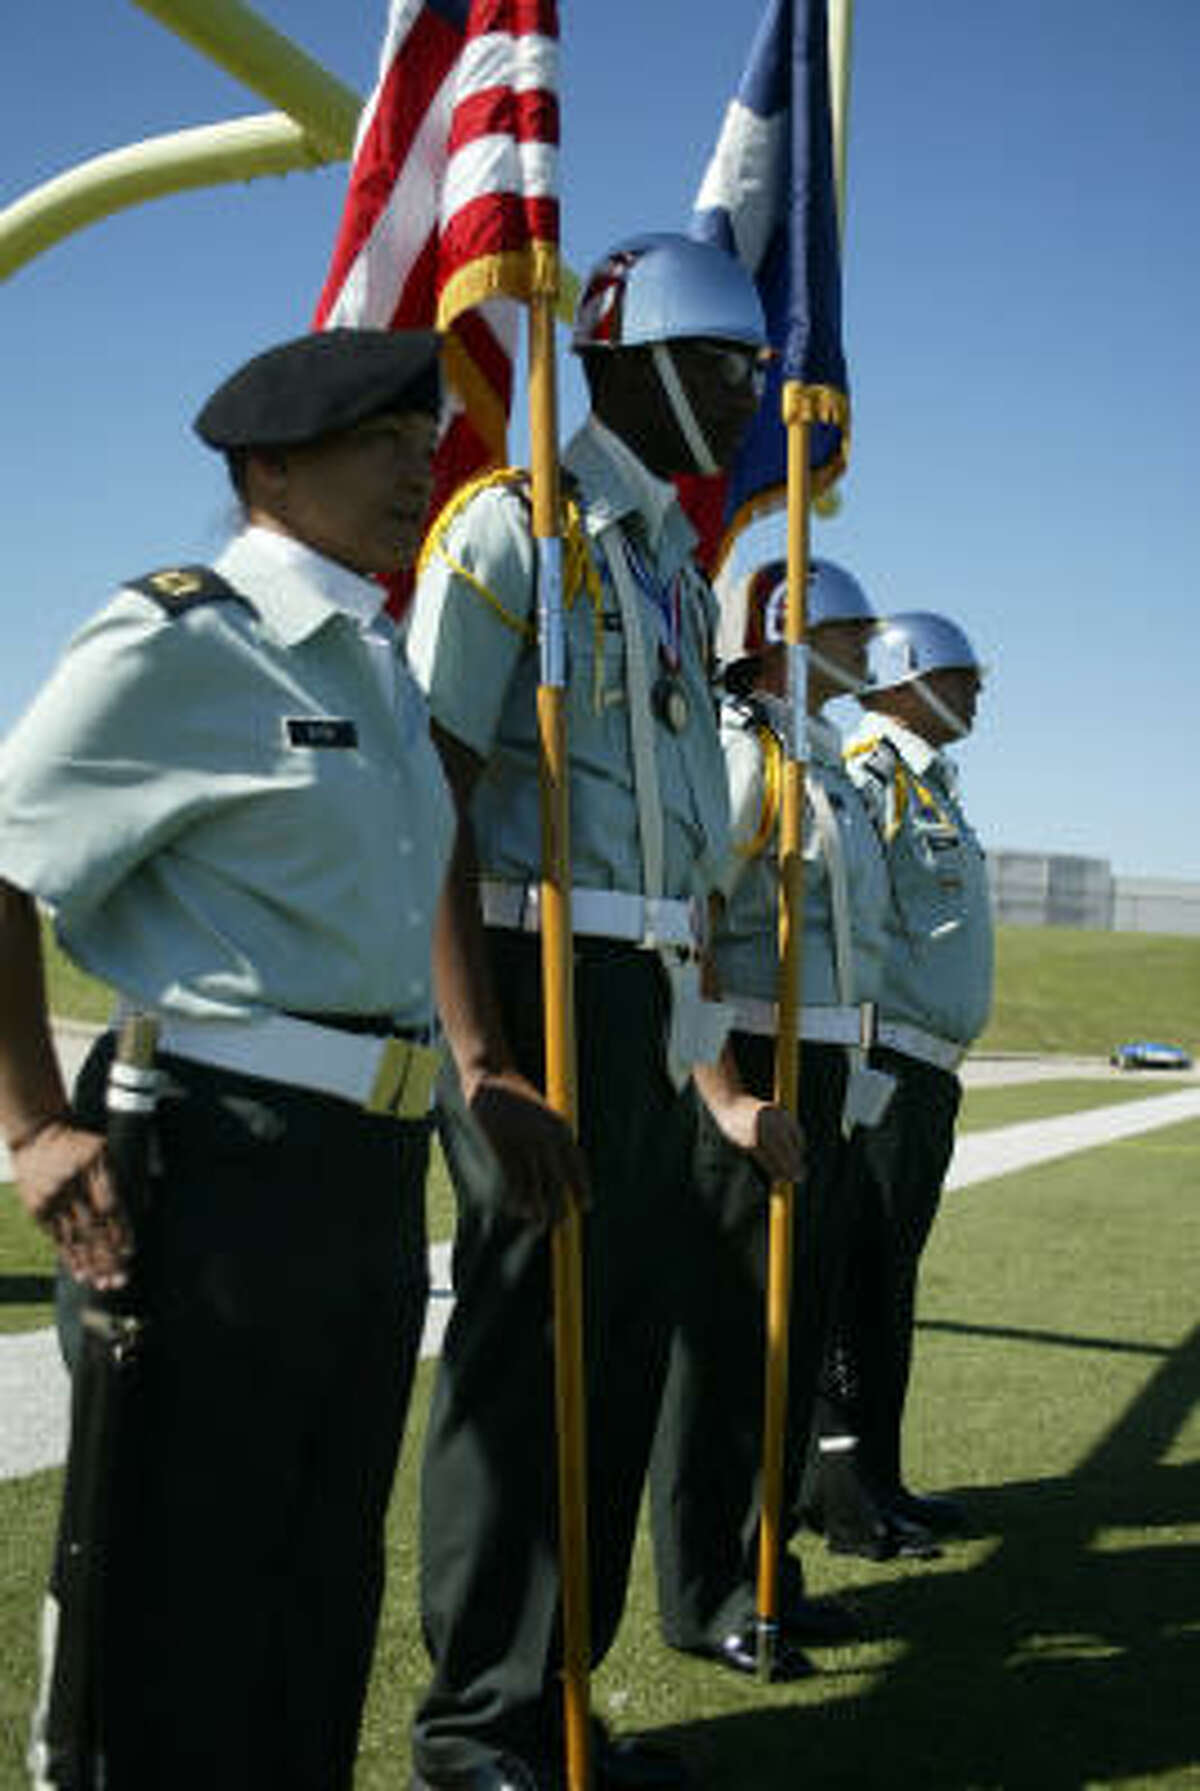 The ROTC color guard stands at attention as they await their cue to march to center field.